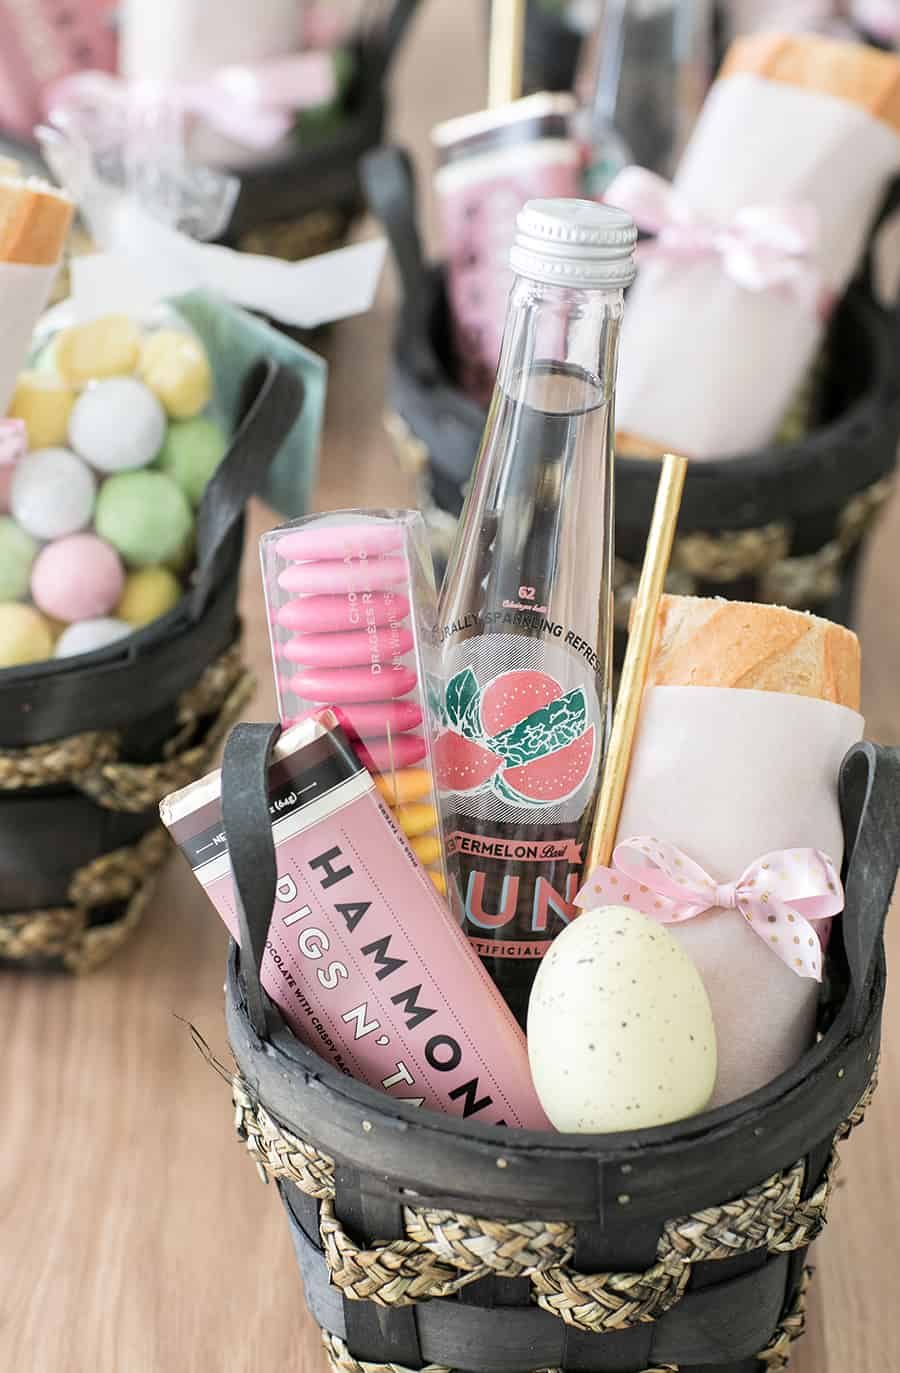 Mini Easter baskets filled with chocolate, water, bread and an Easter egg.